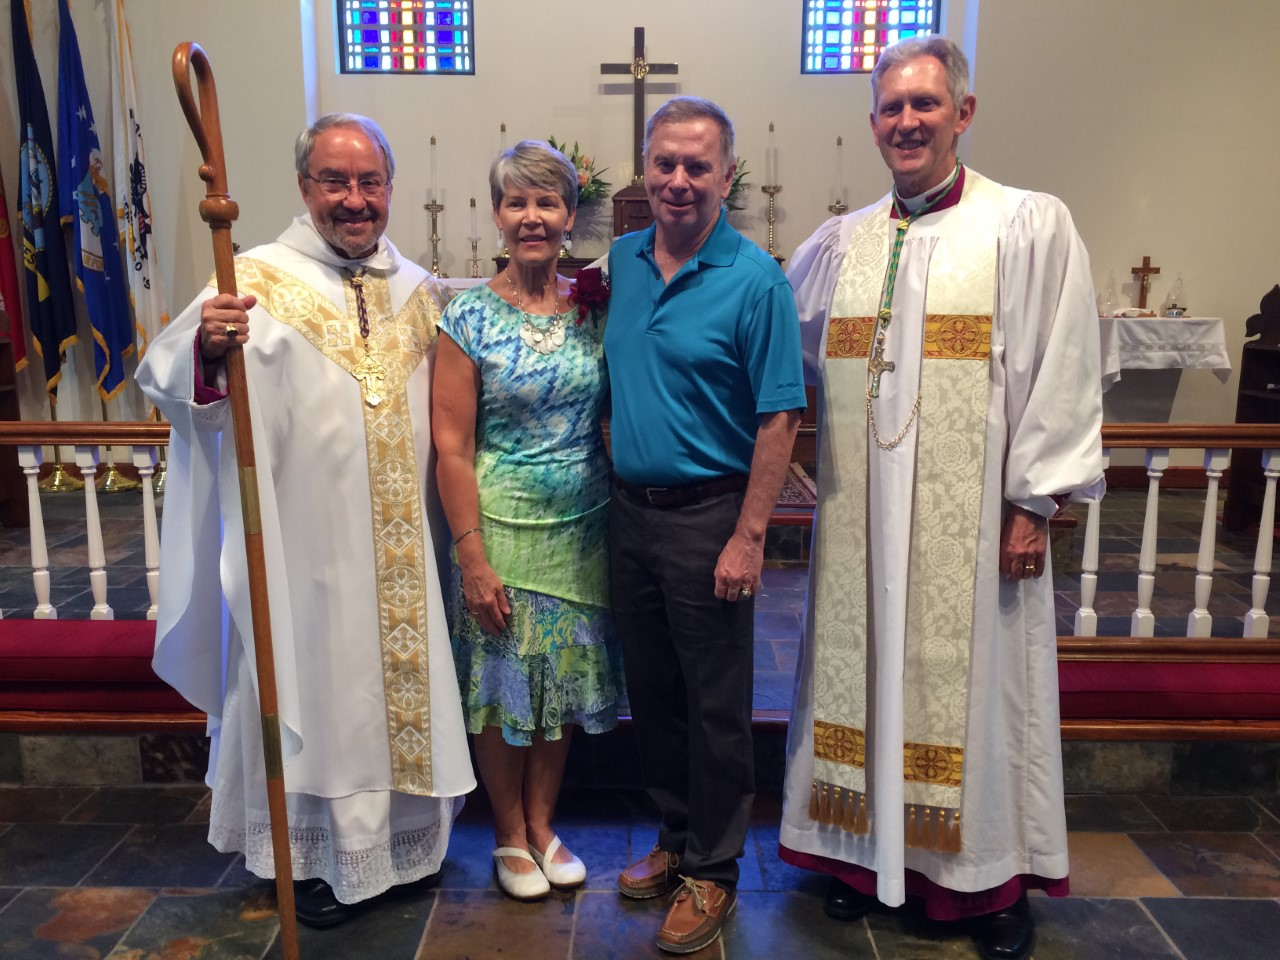 Bp. Grundorf, Confirmand Jennifer Breitenbach, her husband Barry, Bp. Haines